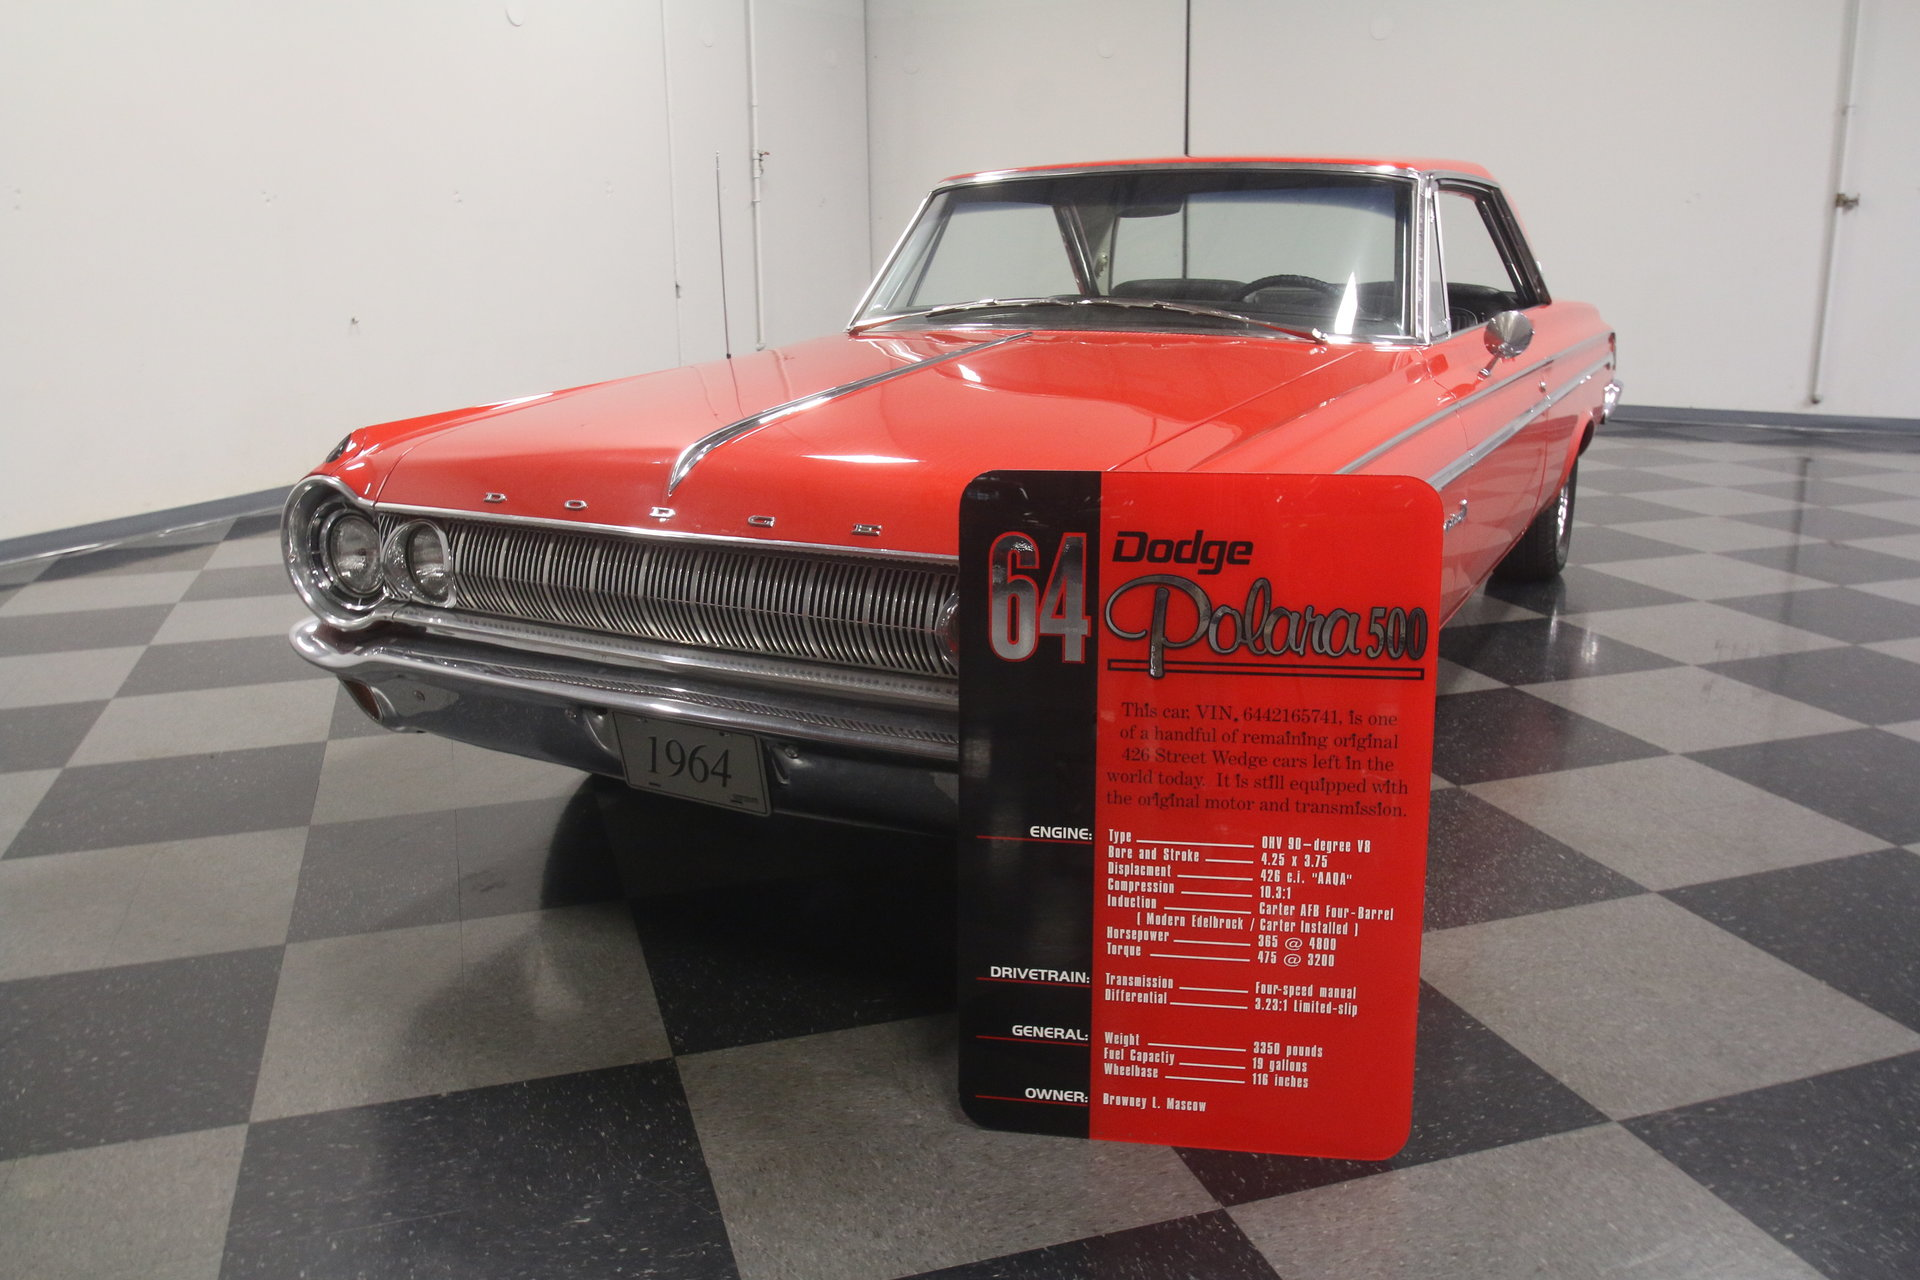 1964 Dodge Polara Streetside Classics The Nations Trusted 4 Door Hardtop For Sale Spincar View Play Video 360